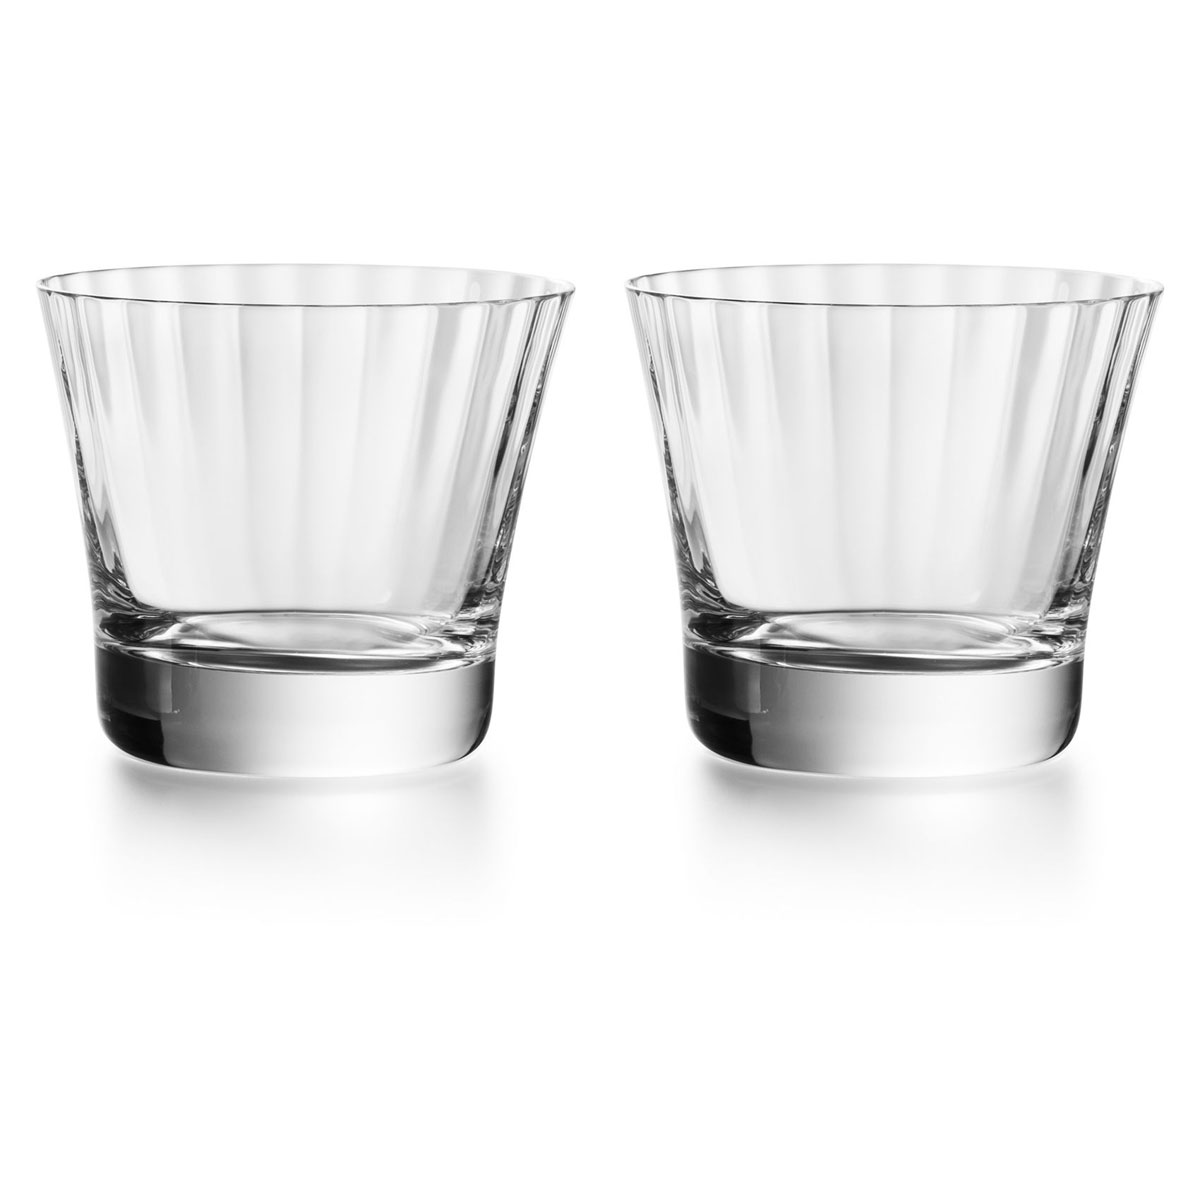 Baccarat Crystal, Mille Nuits OF Tumbler of No. 3, Boxed Pair